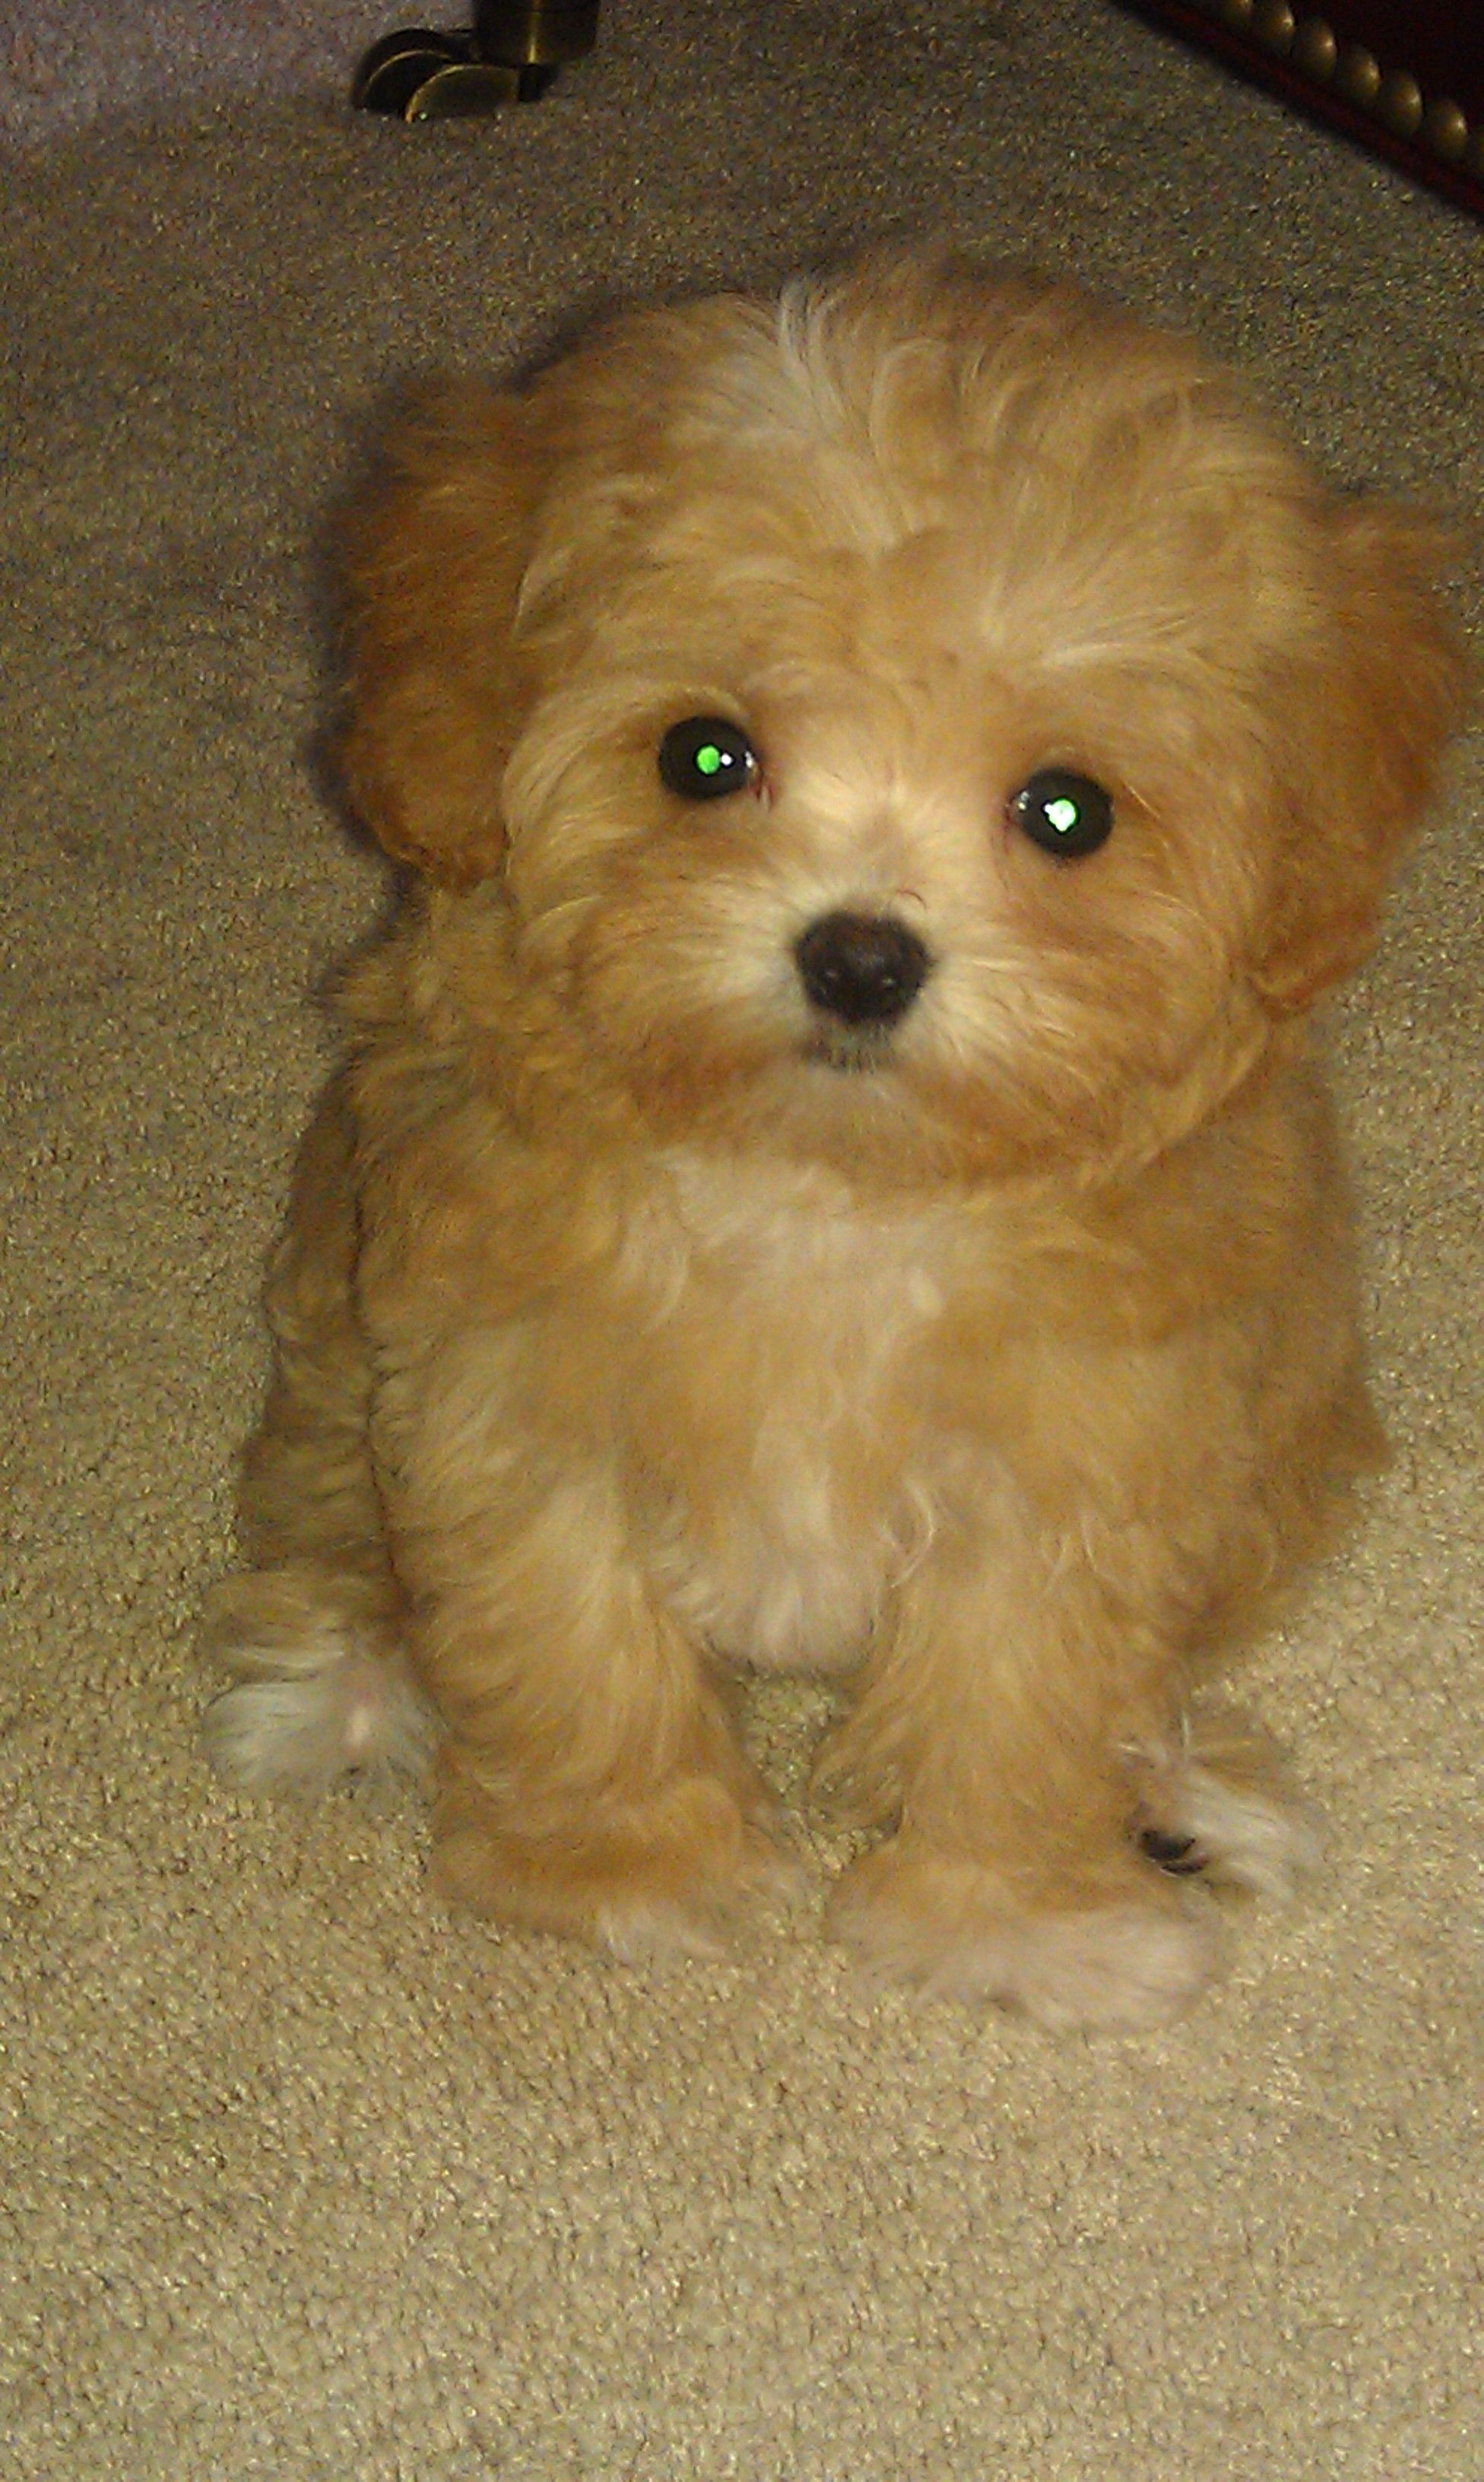 Bella Cutest Maltipoo Ever But That Name Has Got To Go Ruined Such A Cute Dog Cute Dogs Maltipoo Puppy Cute Small Dogs